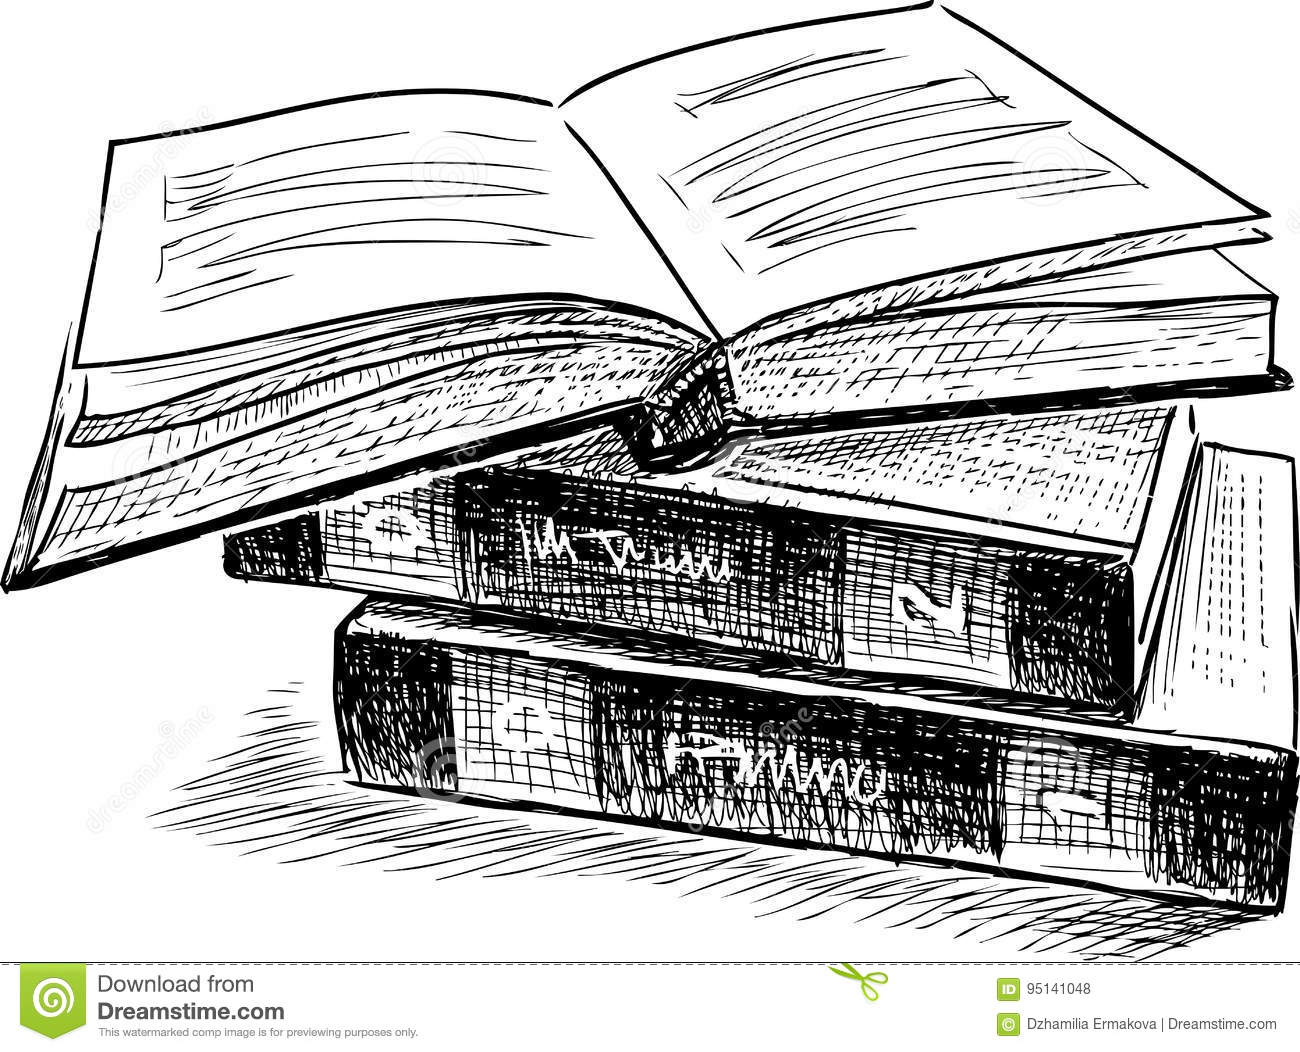 Sketch of three books